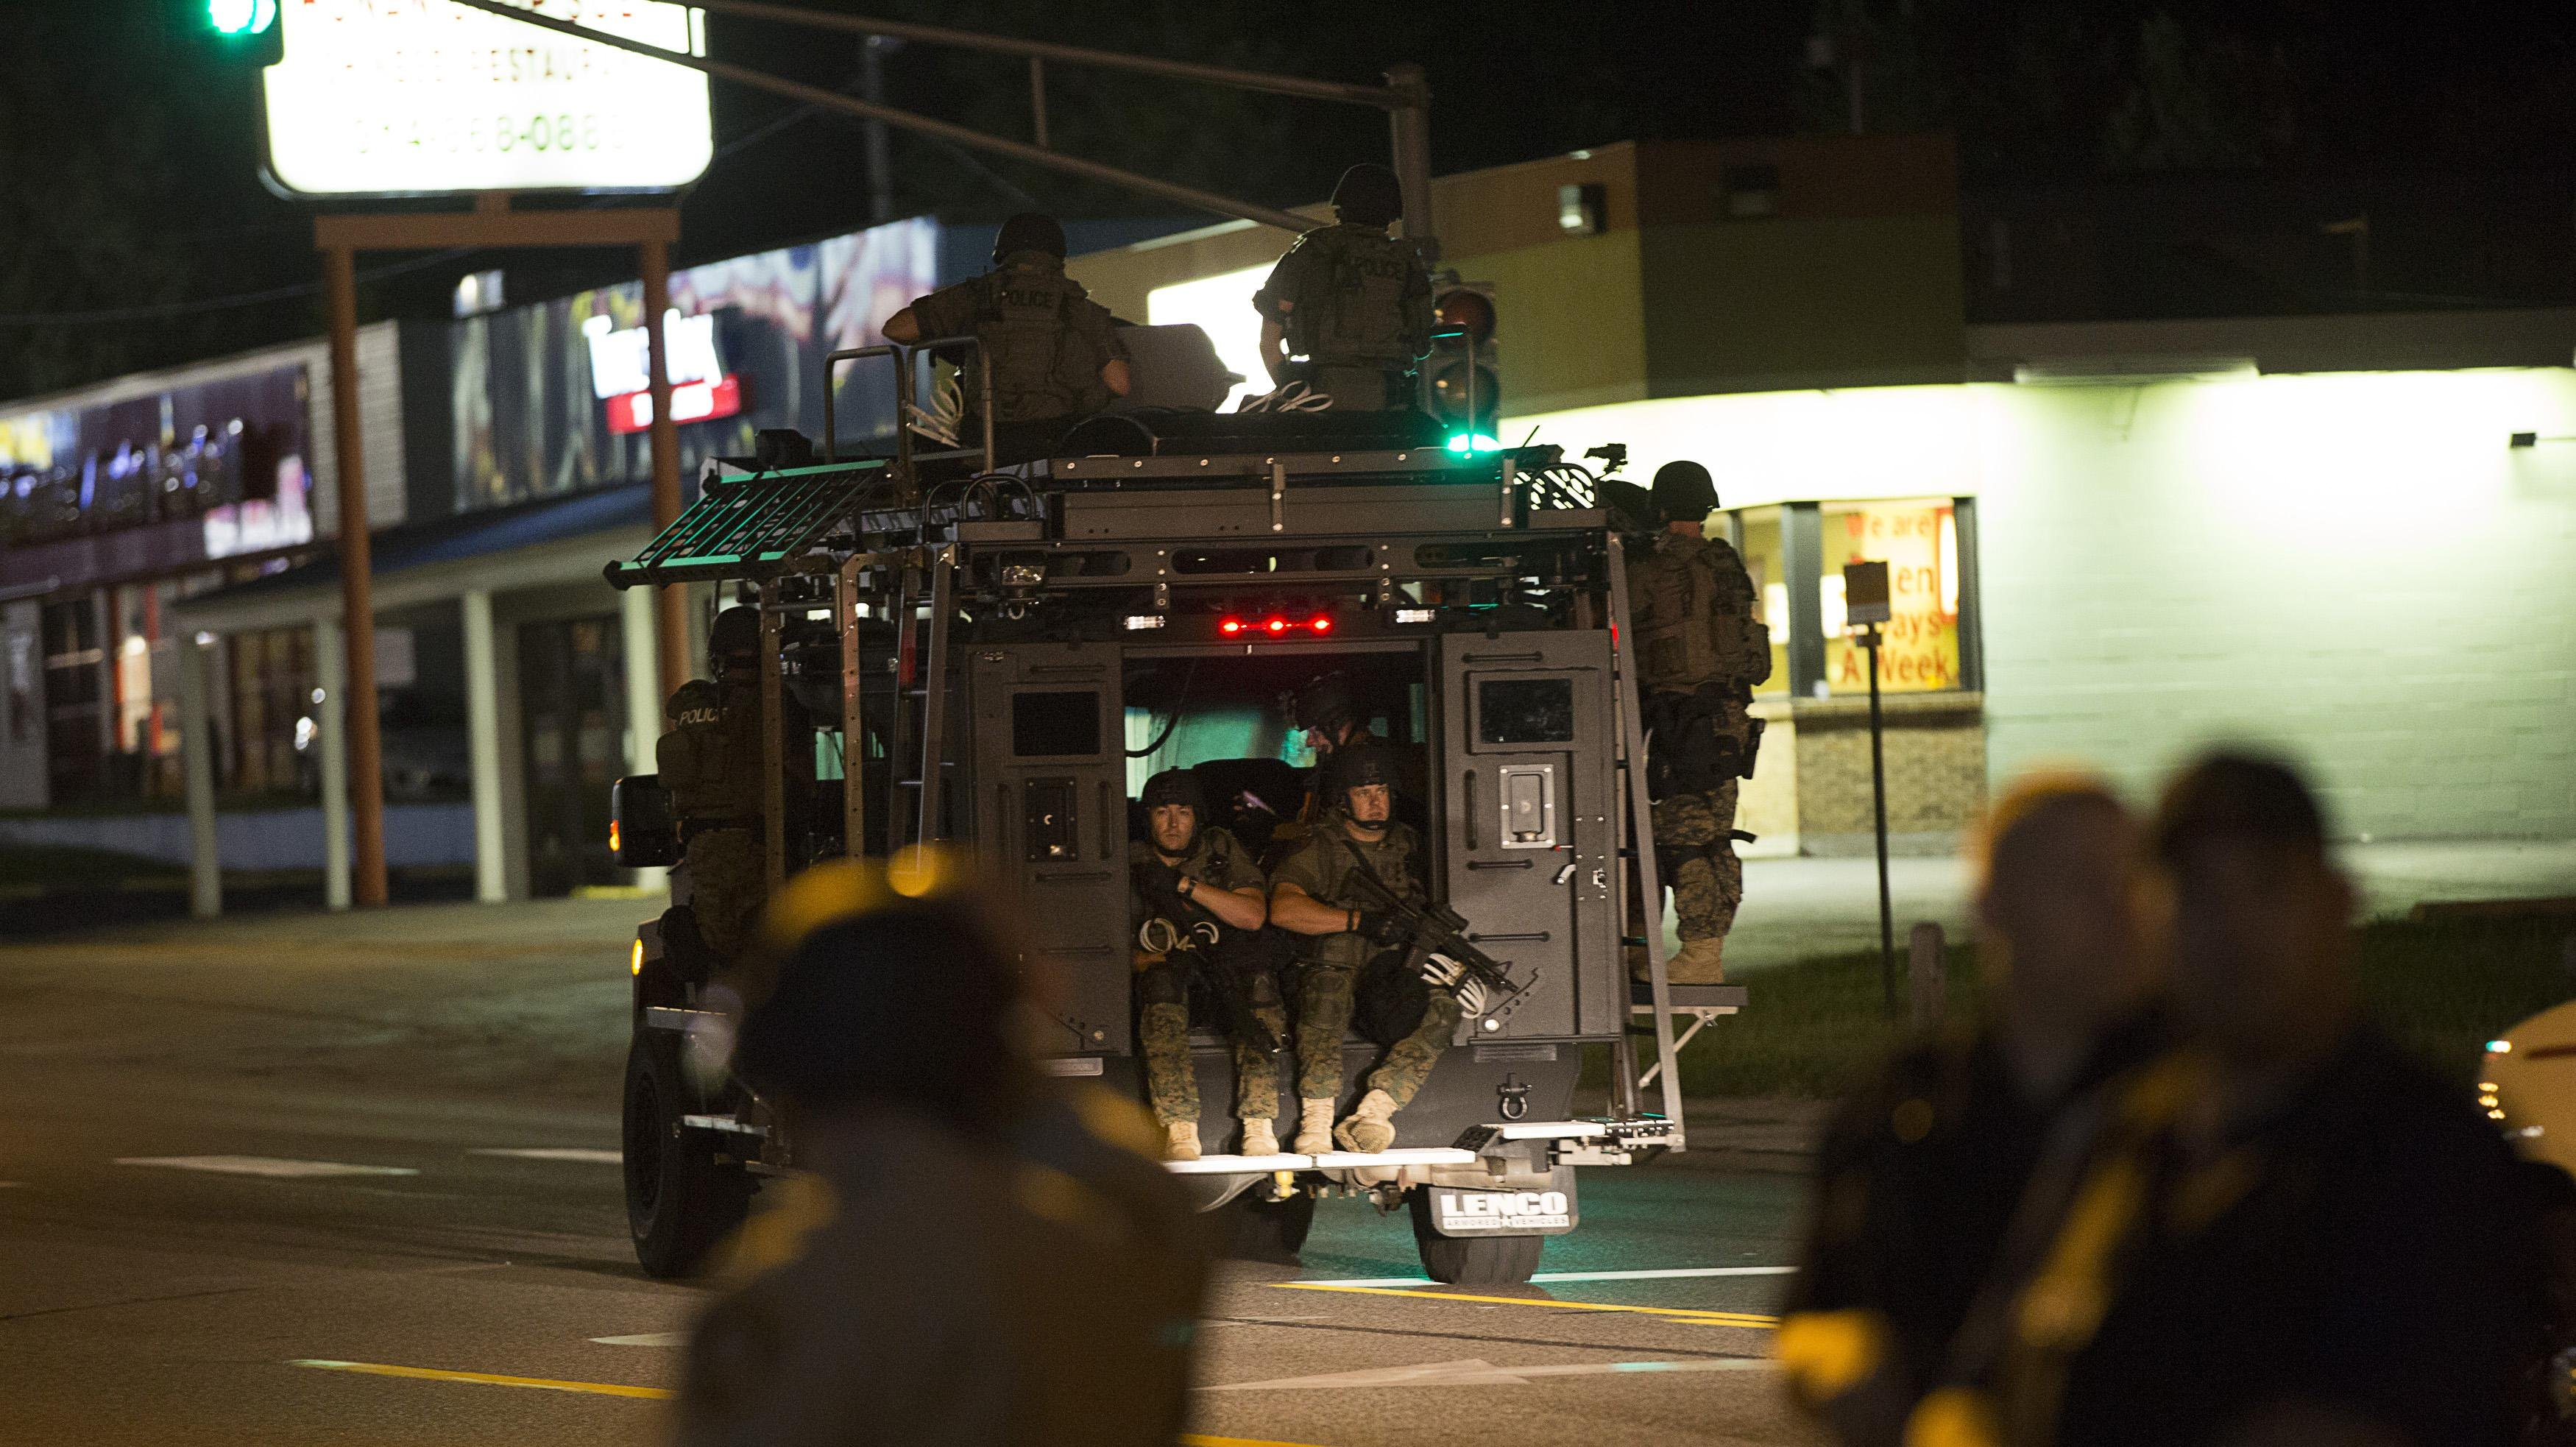 Police officers ride an armored vehicle as they patrol a street in Ferguson, Mo. on Aug. 11, 2014.